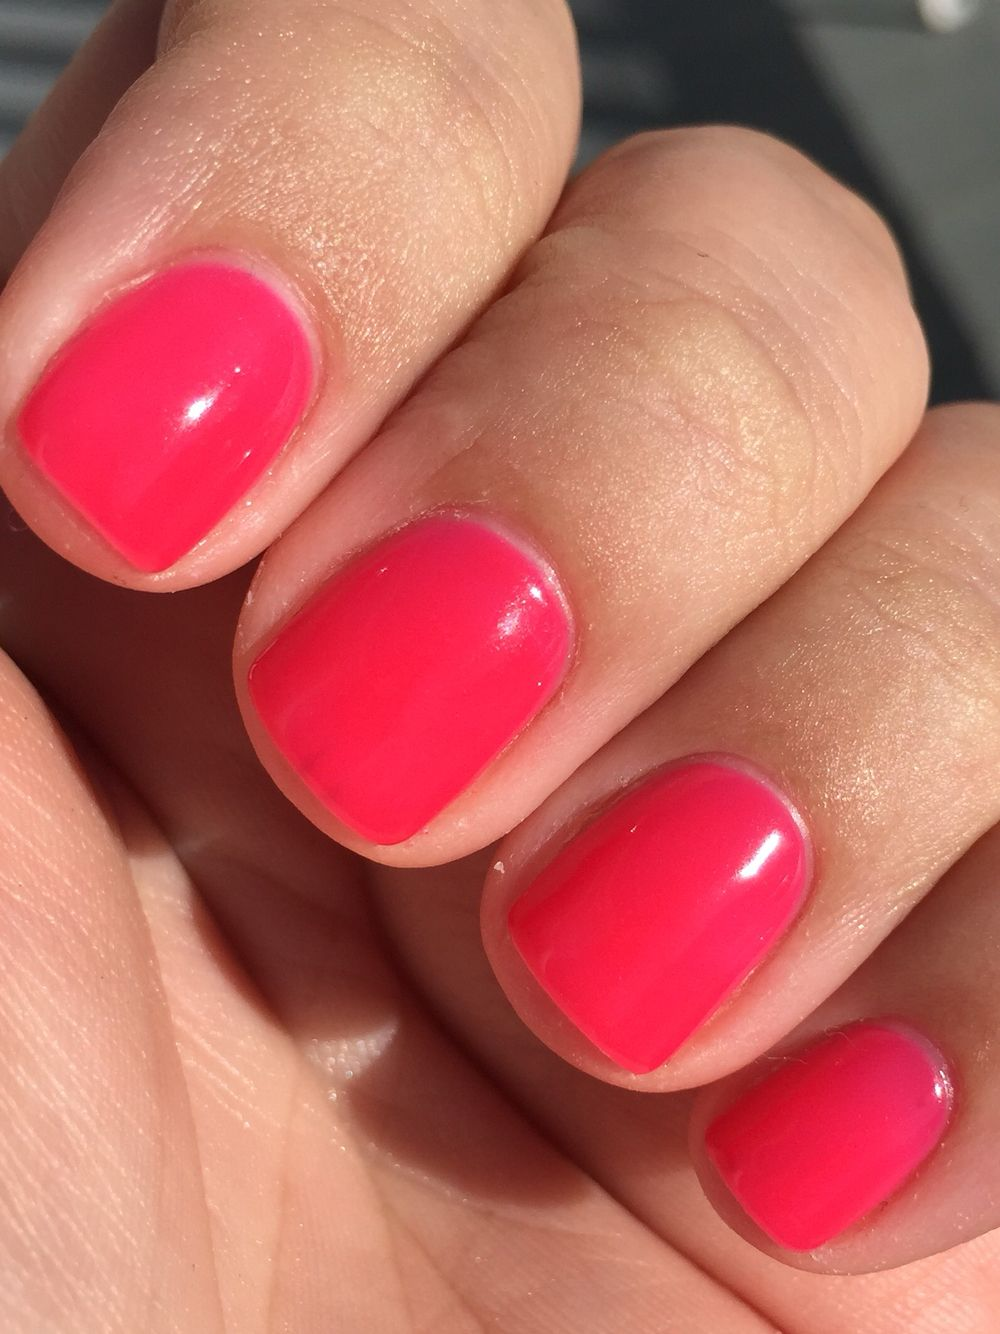 Essie gel bring me another polished pinterest essie gel essie gel bring me another parisarafo Images